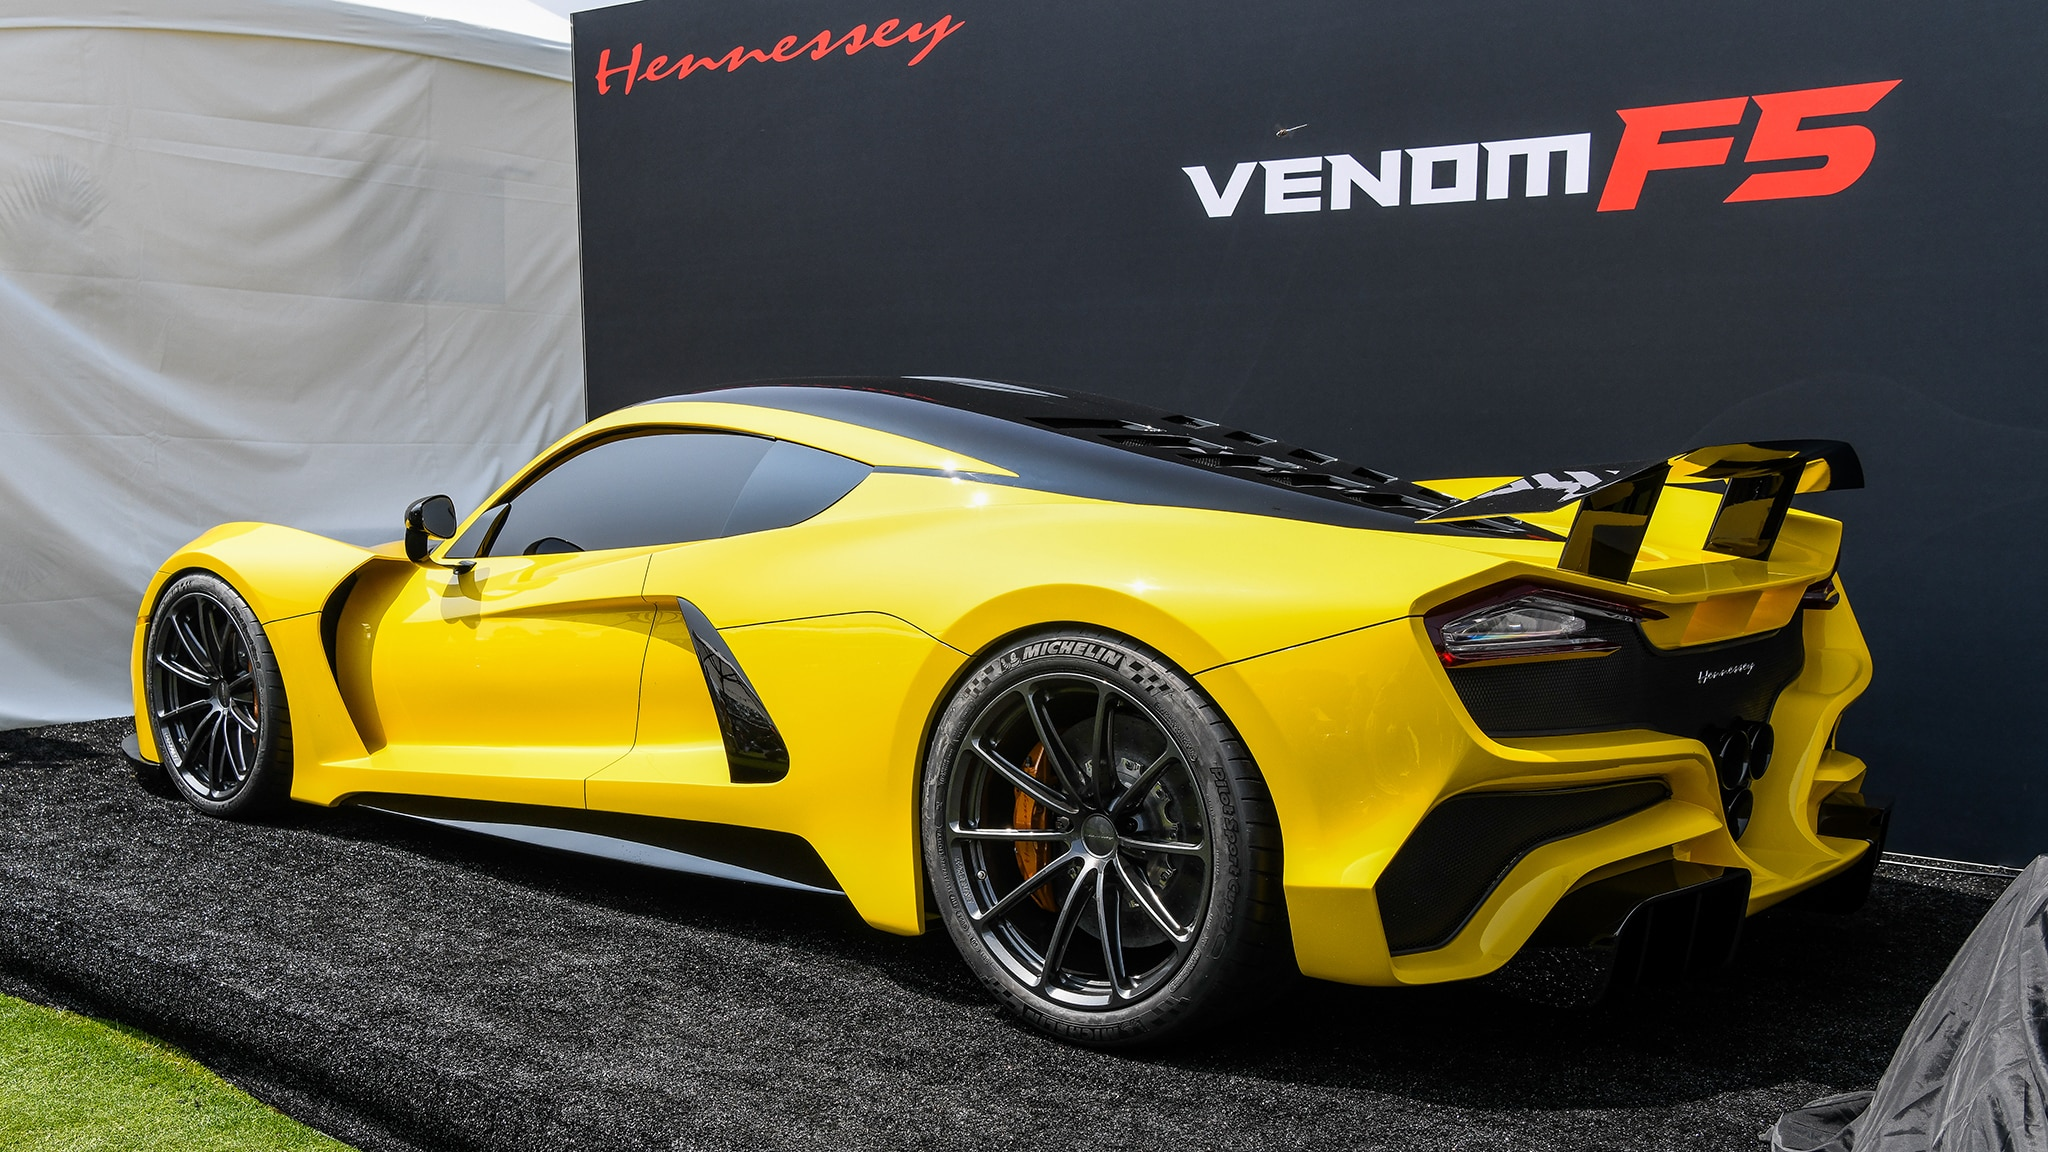 2018 Hennessey Venom F5 Hennessey Reveals Twin Turbo 7 6l V 8 For Venom F5 Automobile